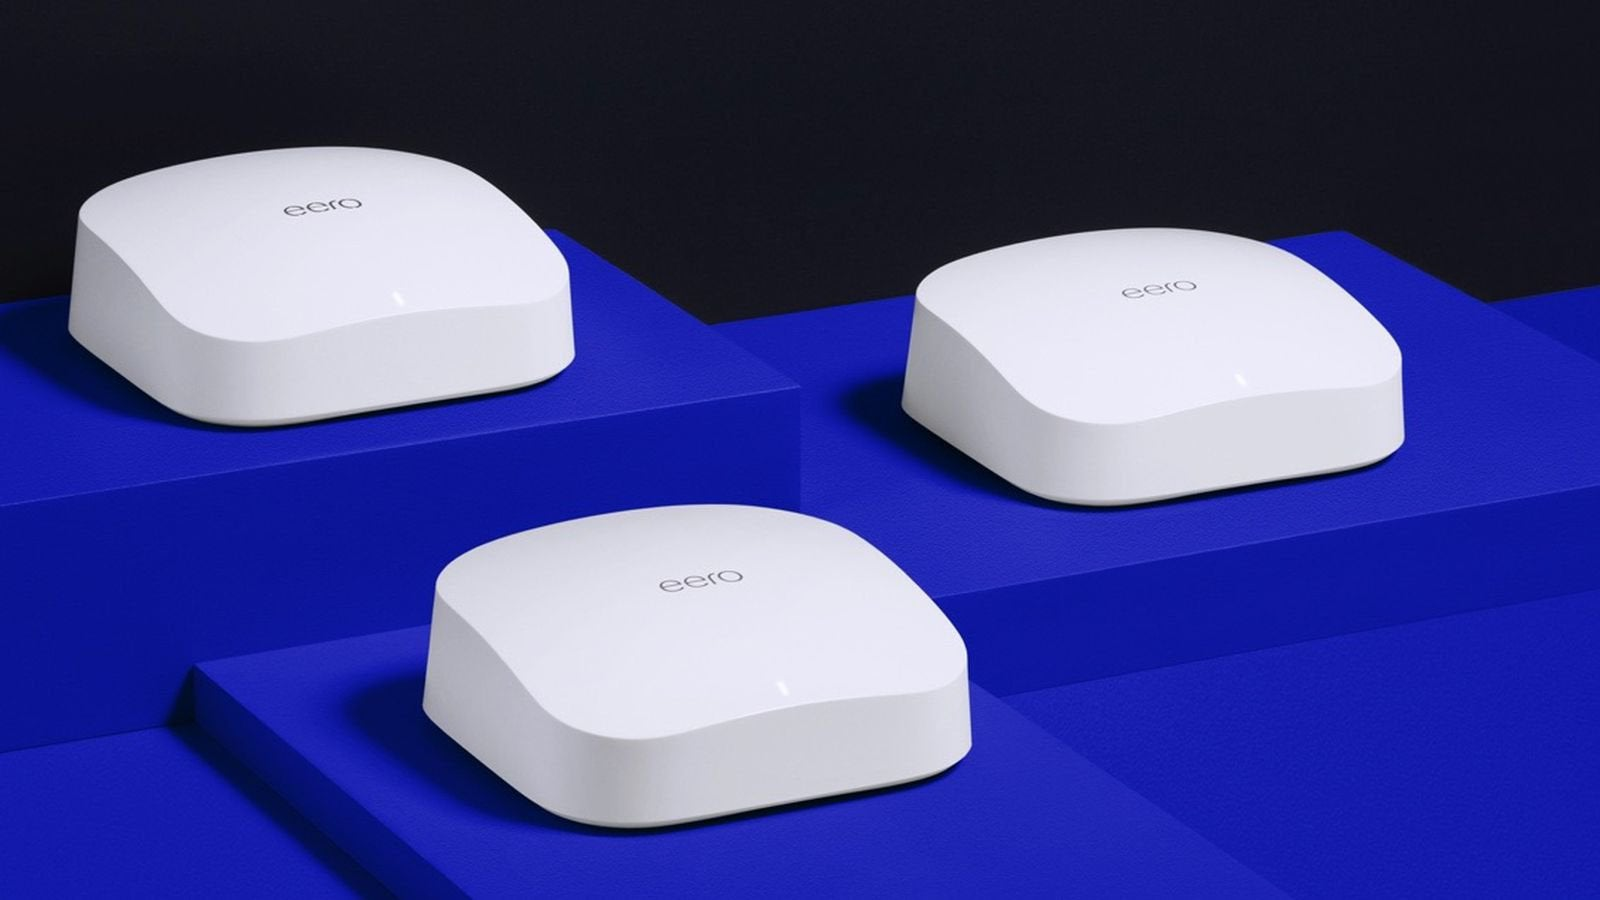 Eero 6 and Pro 6 routers gain HomeKit support